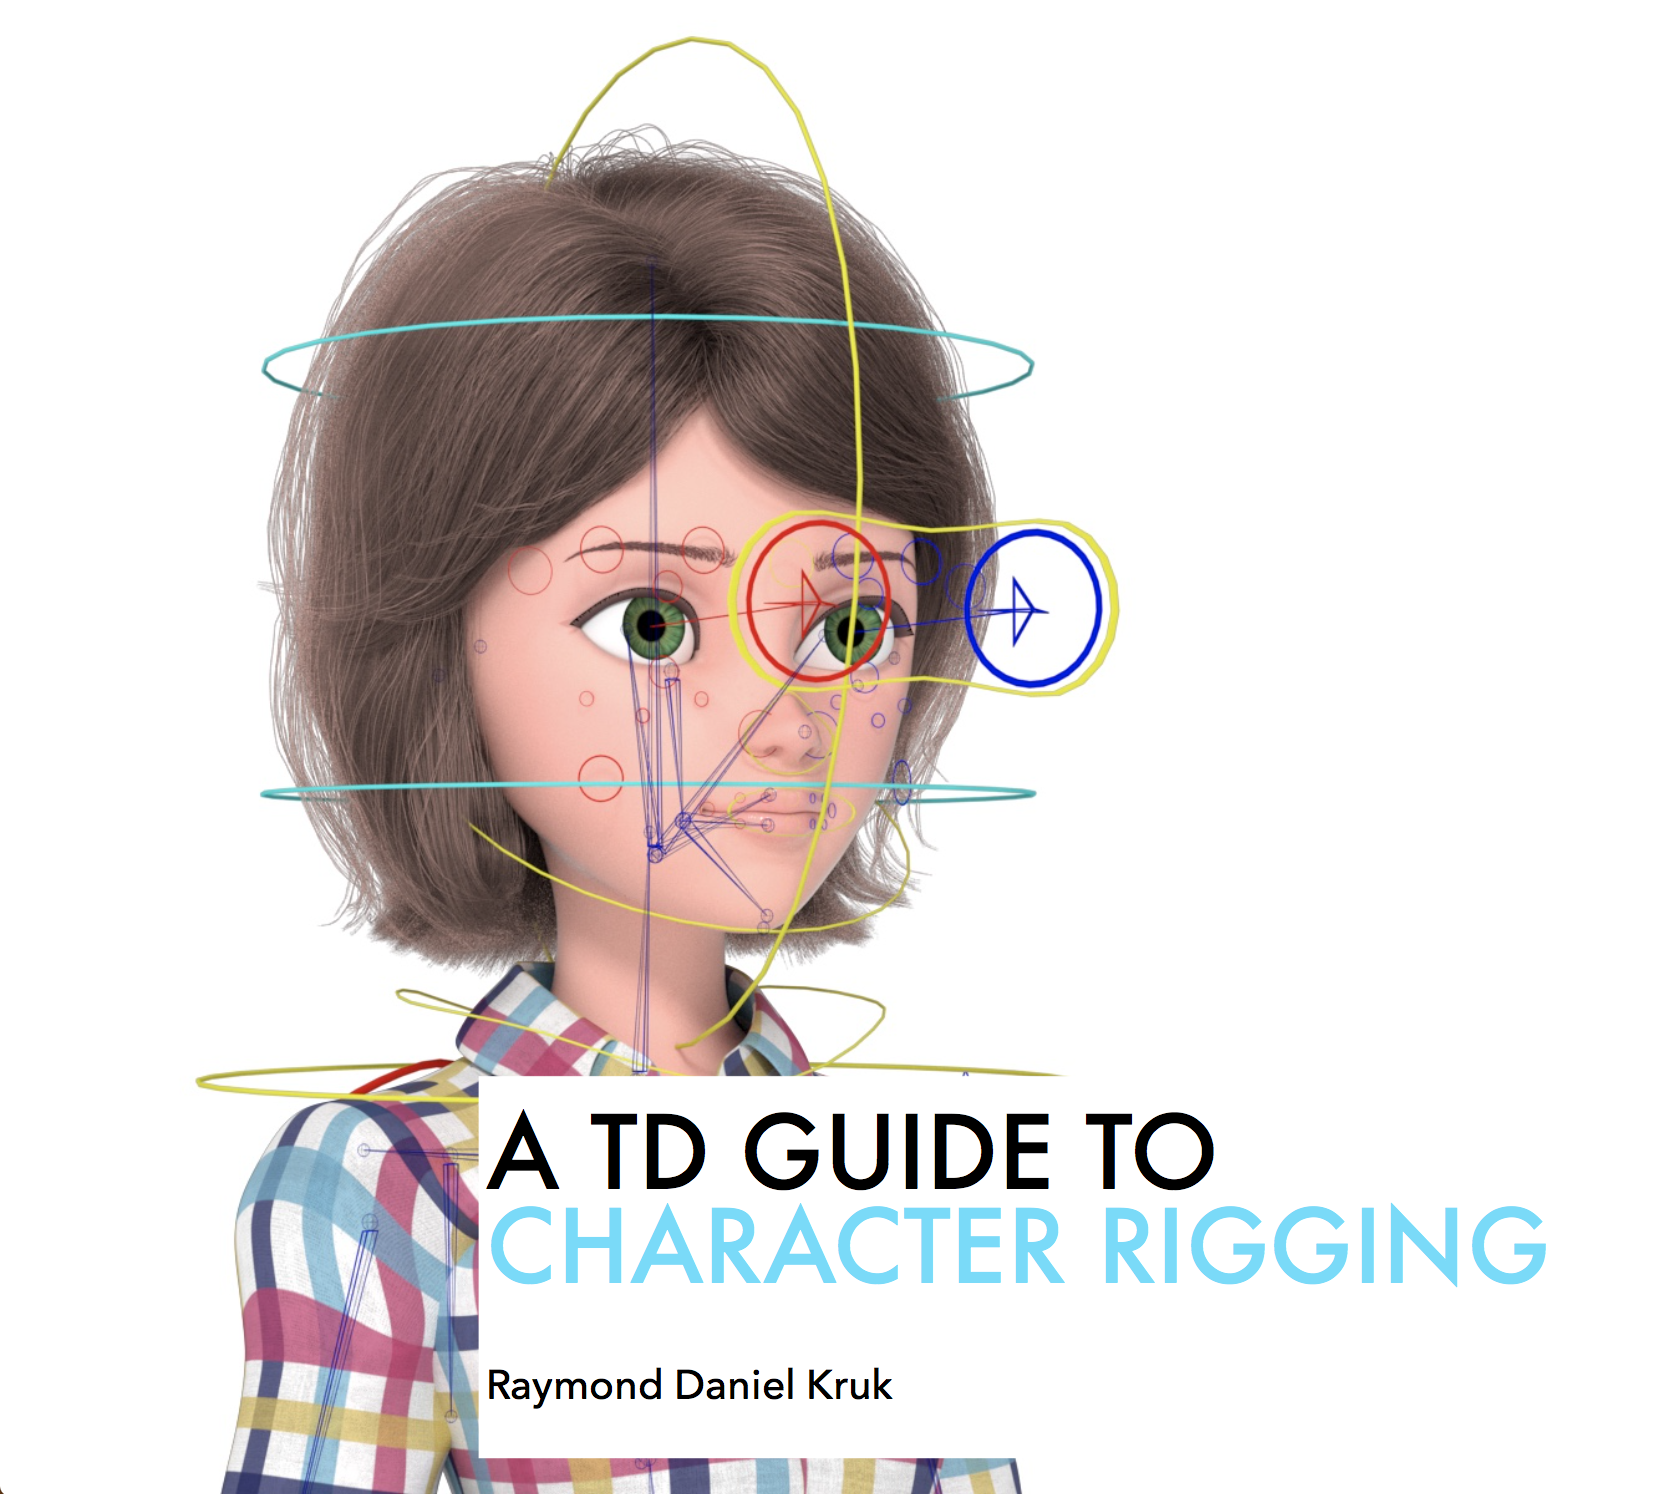 A TD Guide to Character Rigging, includes a full body and facial setup of a professional rig.